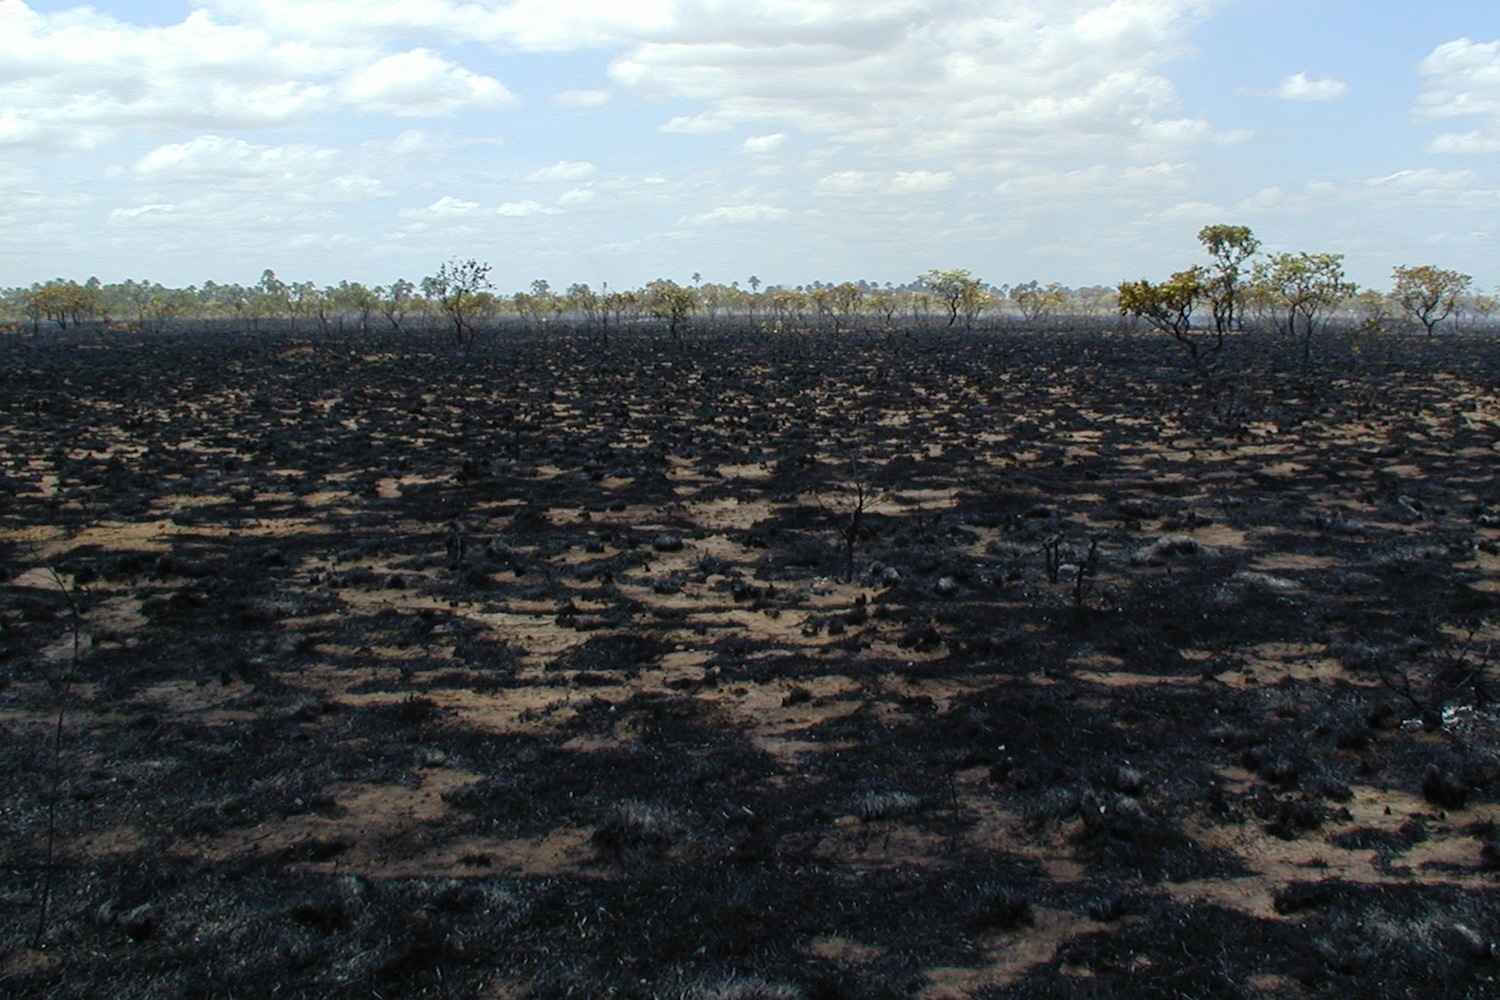 Stop the fires in the Amazon image